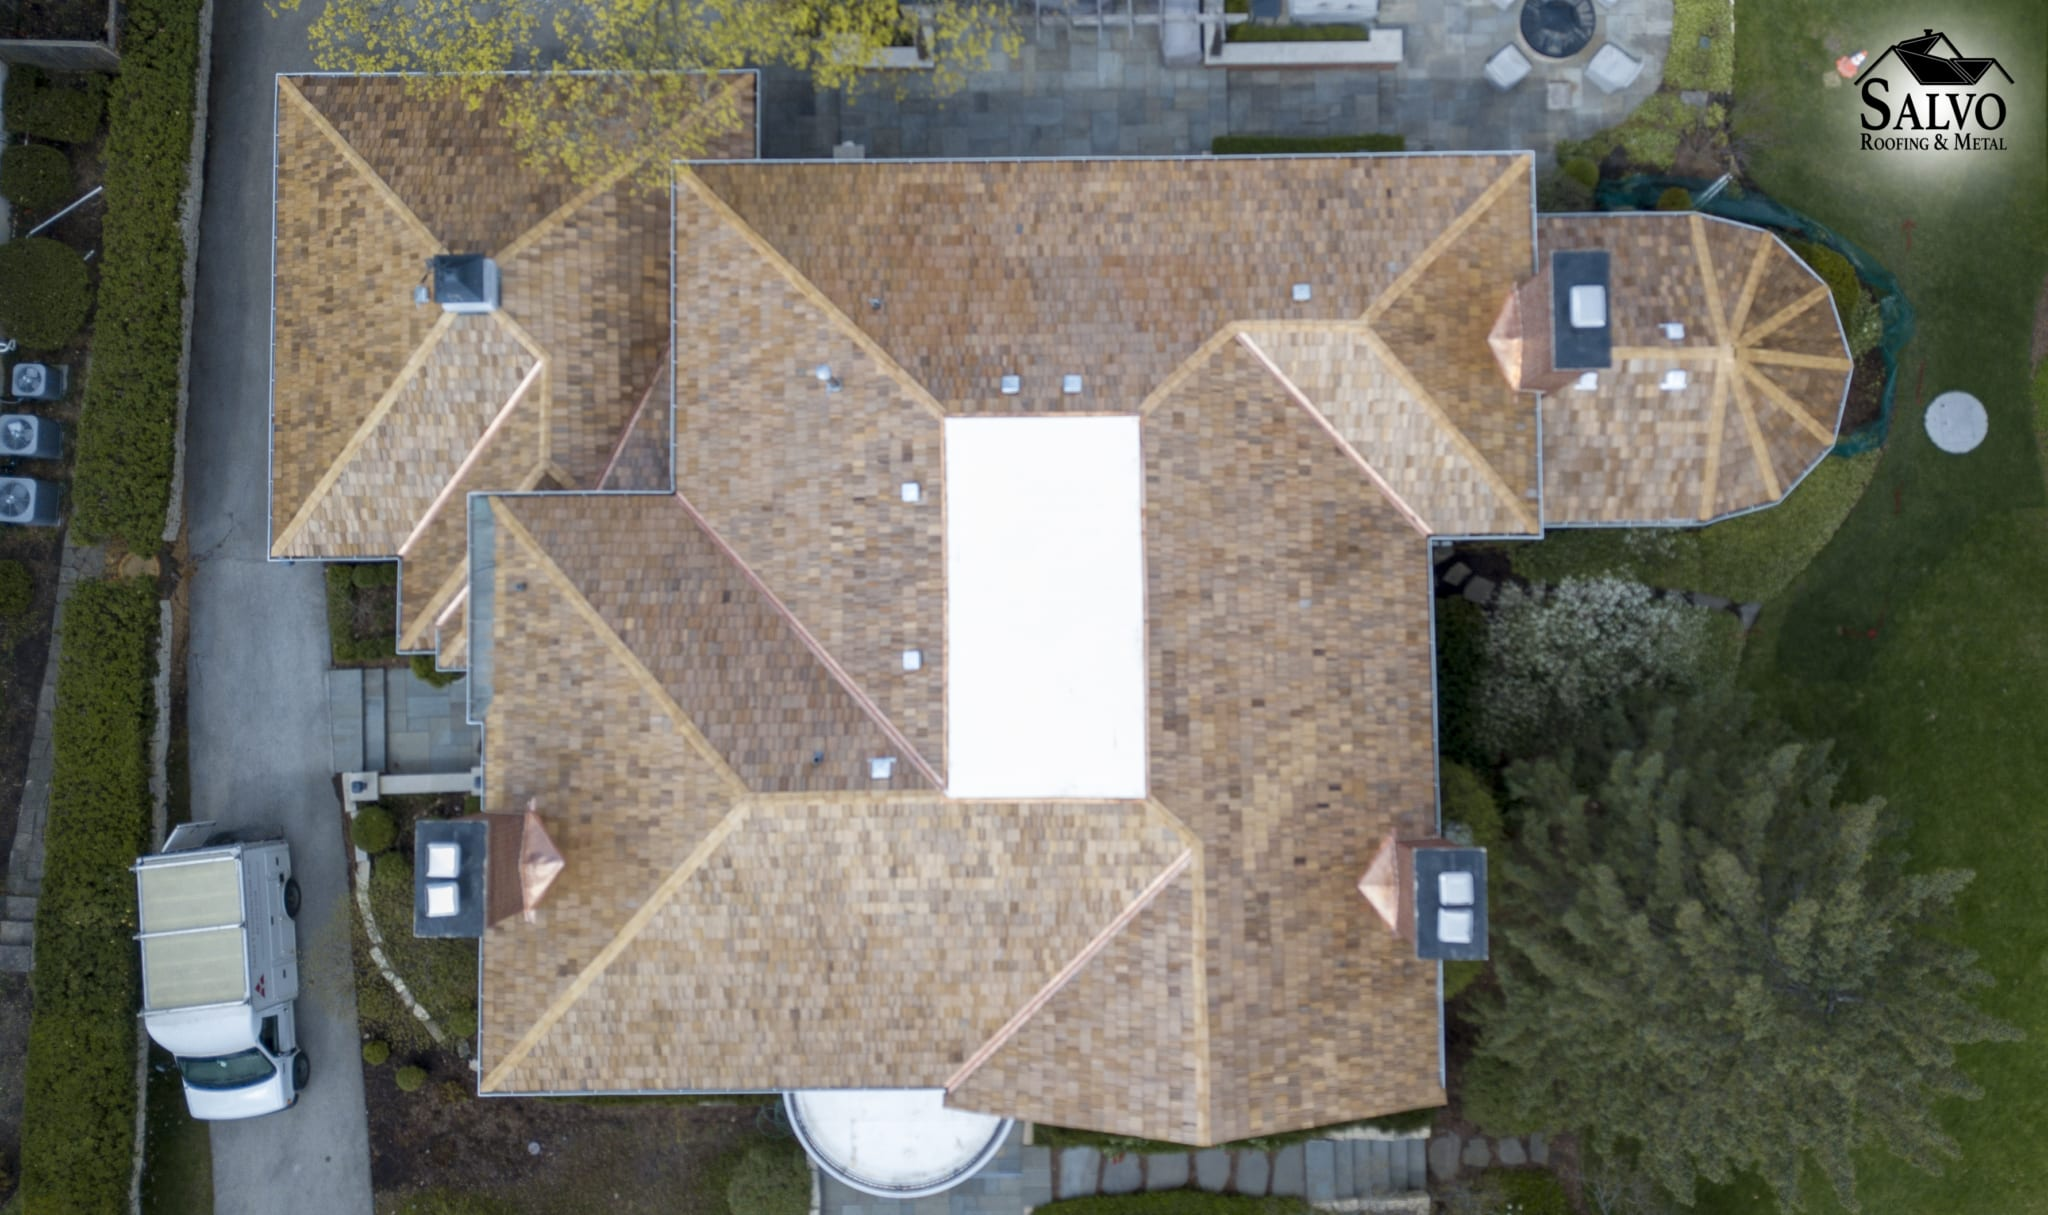 Cedar Roof Image from Drone